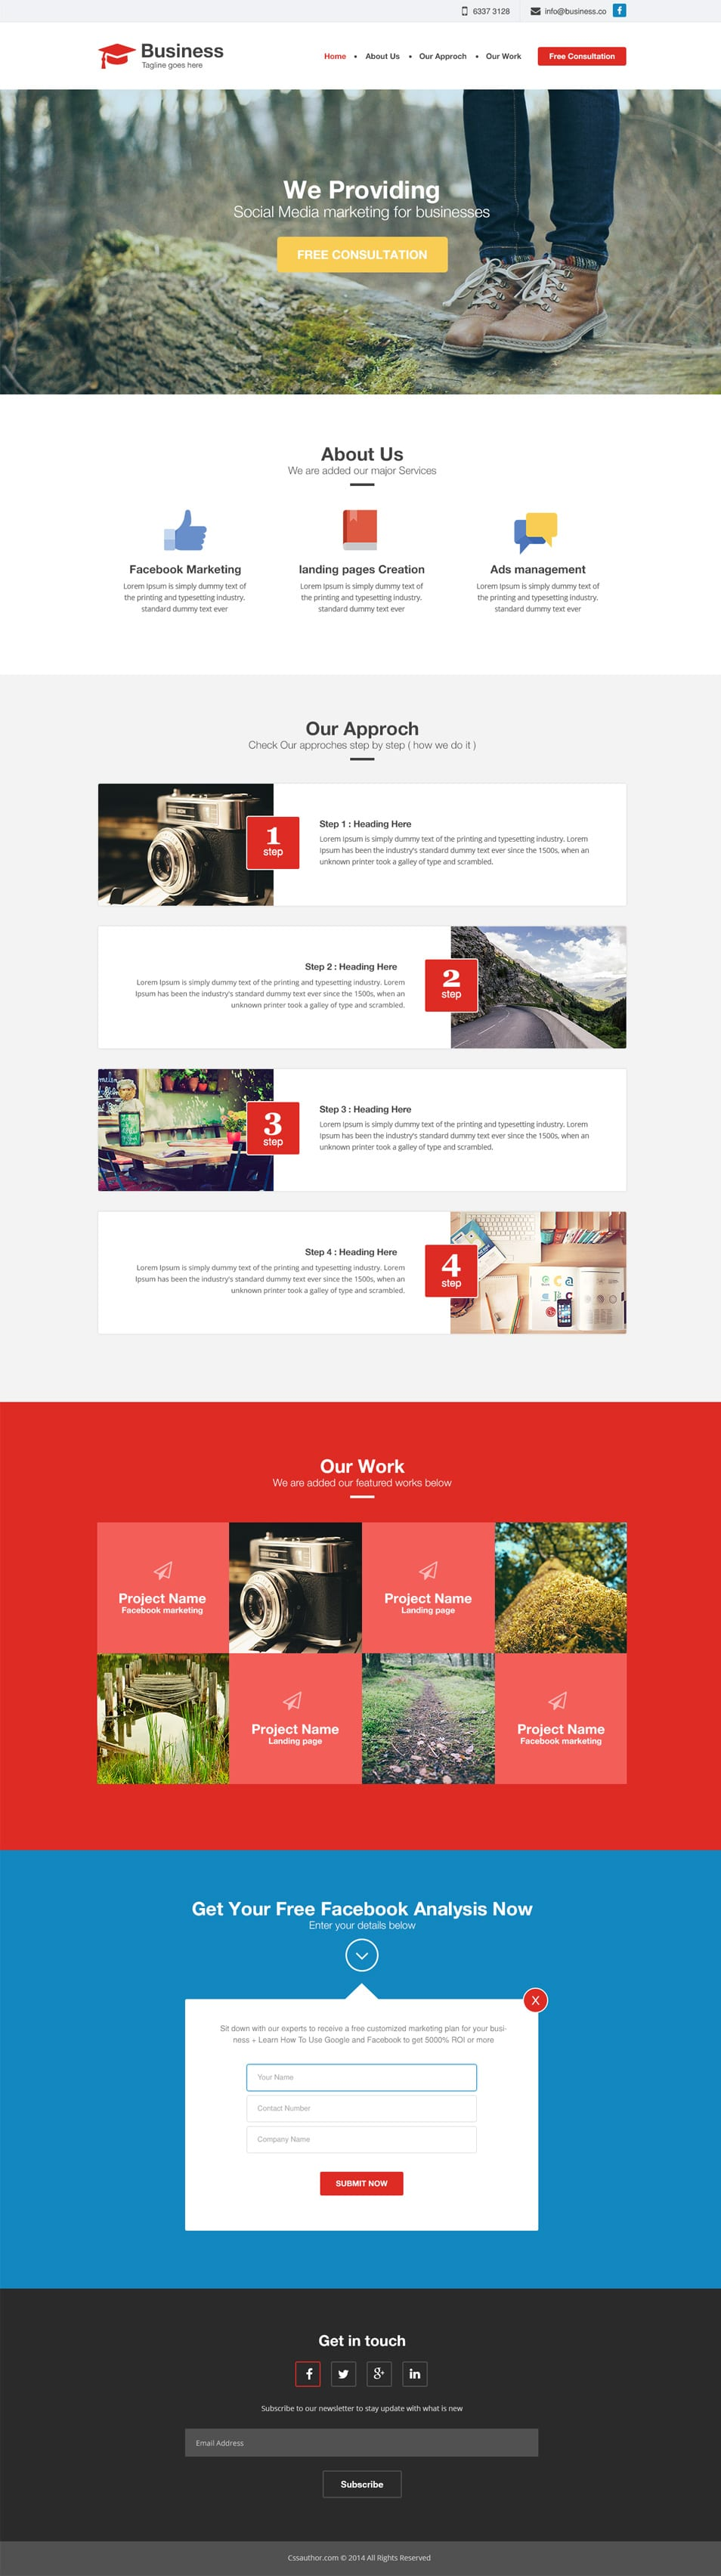 Free Agency - Business Website Template PSD_cssauthor.com